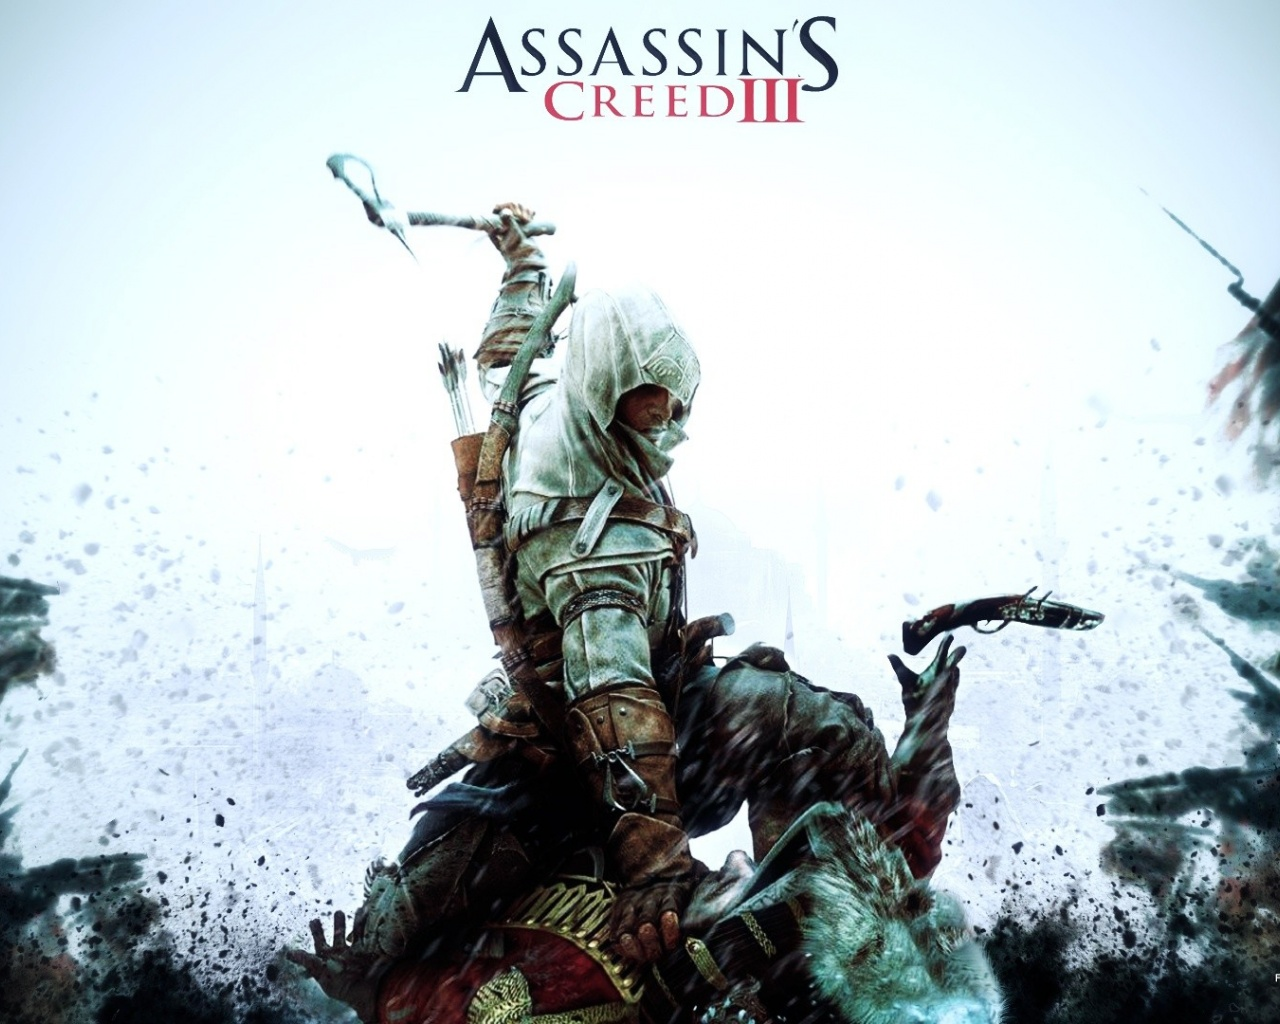 click to free download the wallpaper--Free Pics of Games, Assassin's Creed, the Man Hard in Battle, He is Cool and Bitter 1280X1024 free wallpaper download